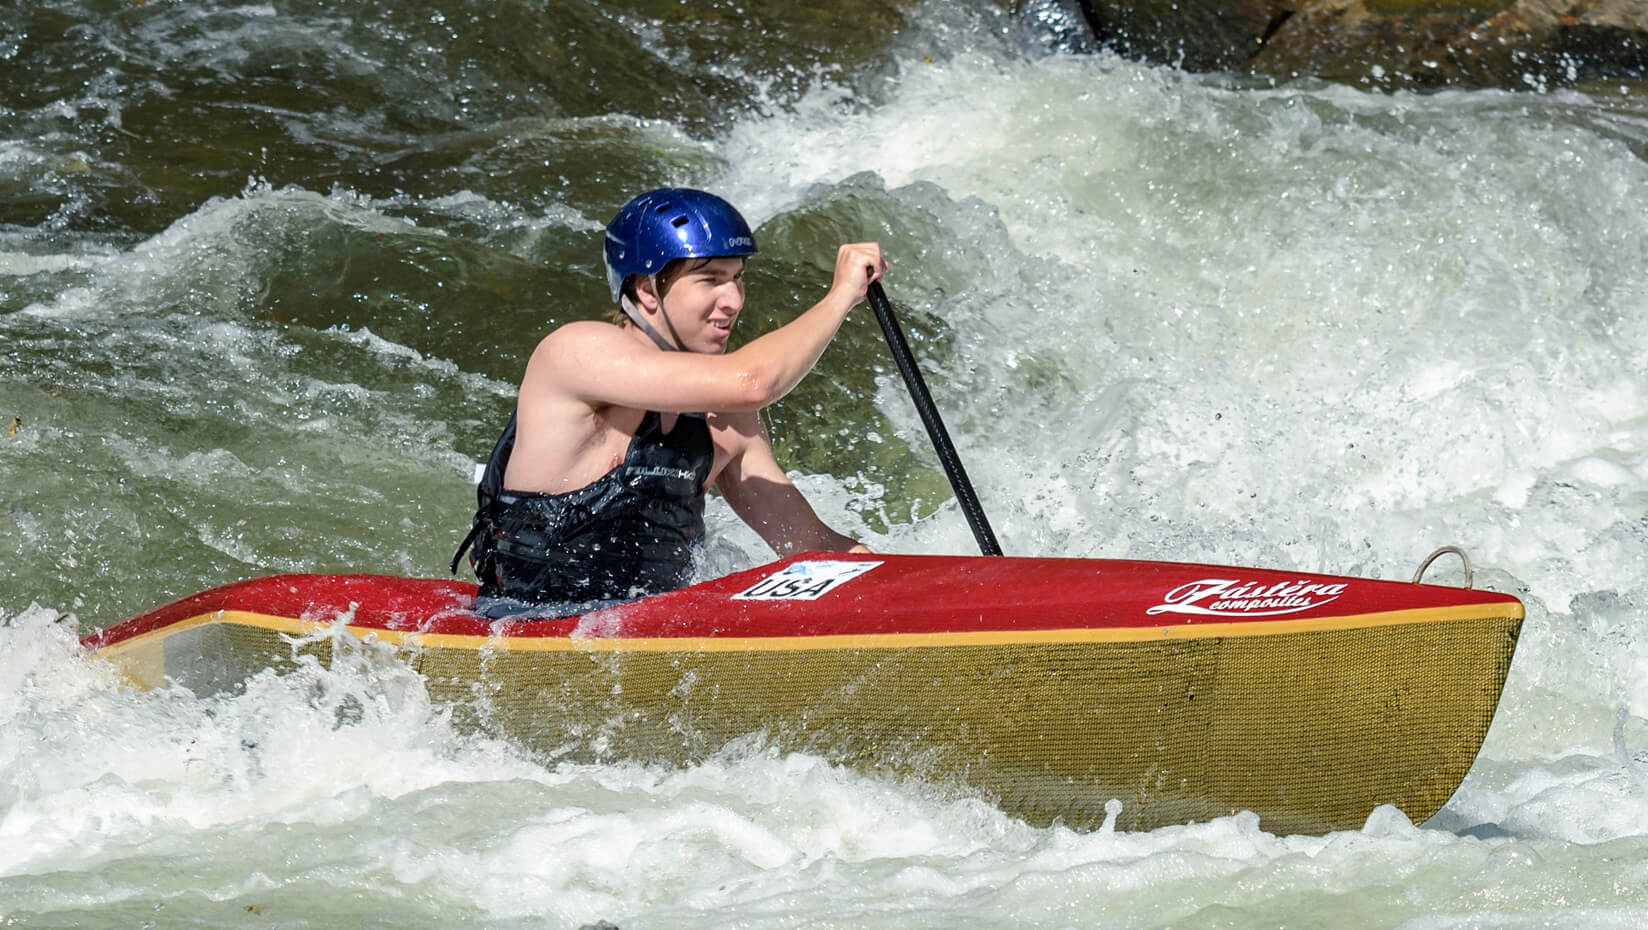 featured image for Fremouw to compete at international level in wildwater canoeing